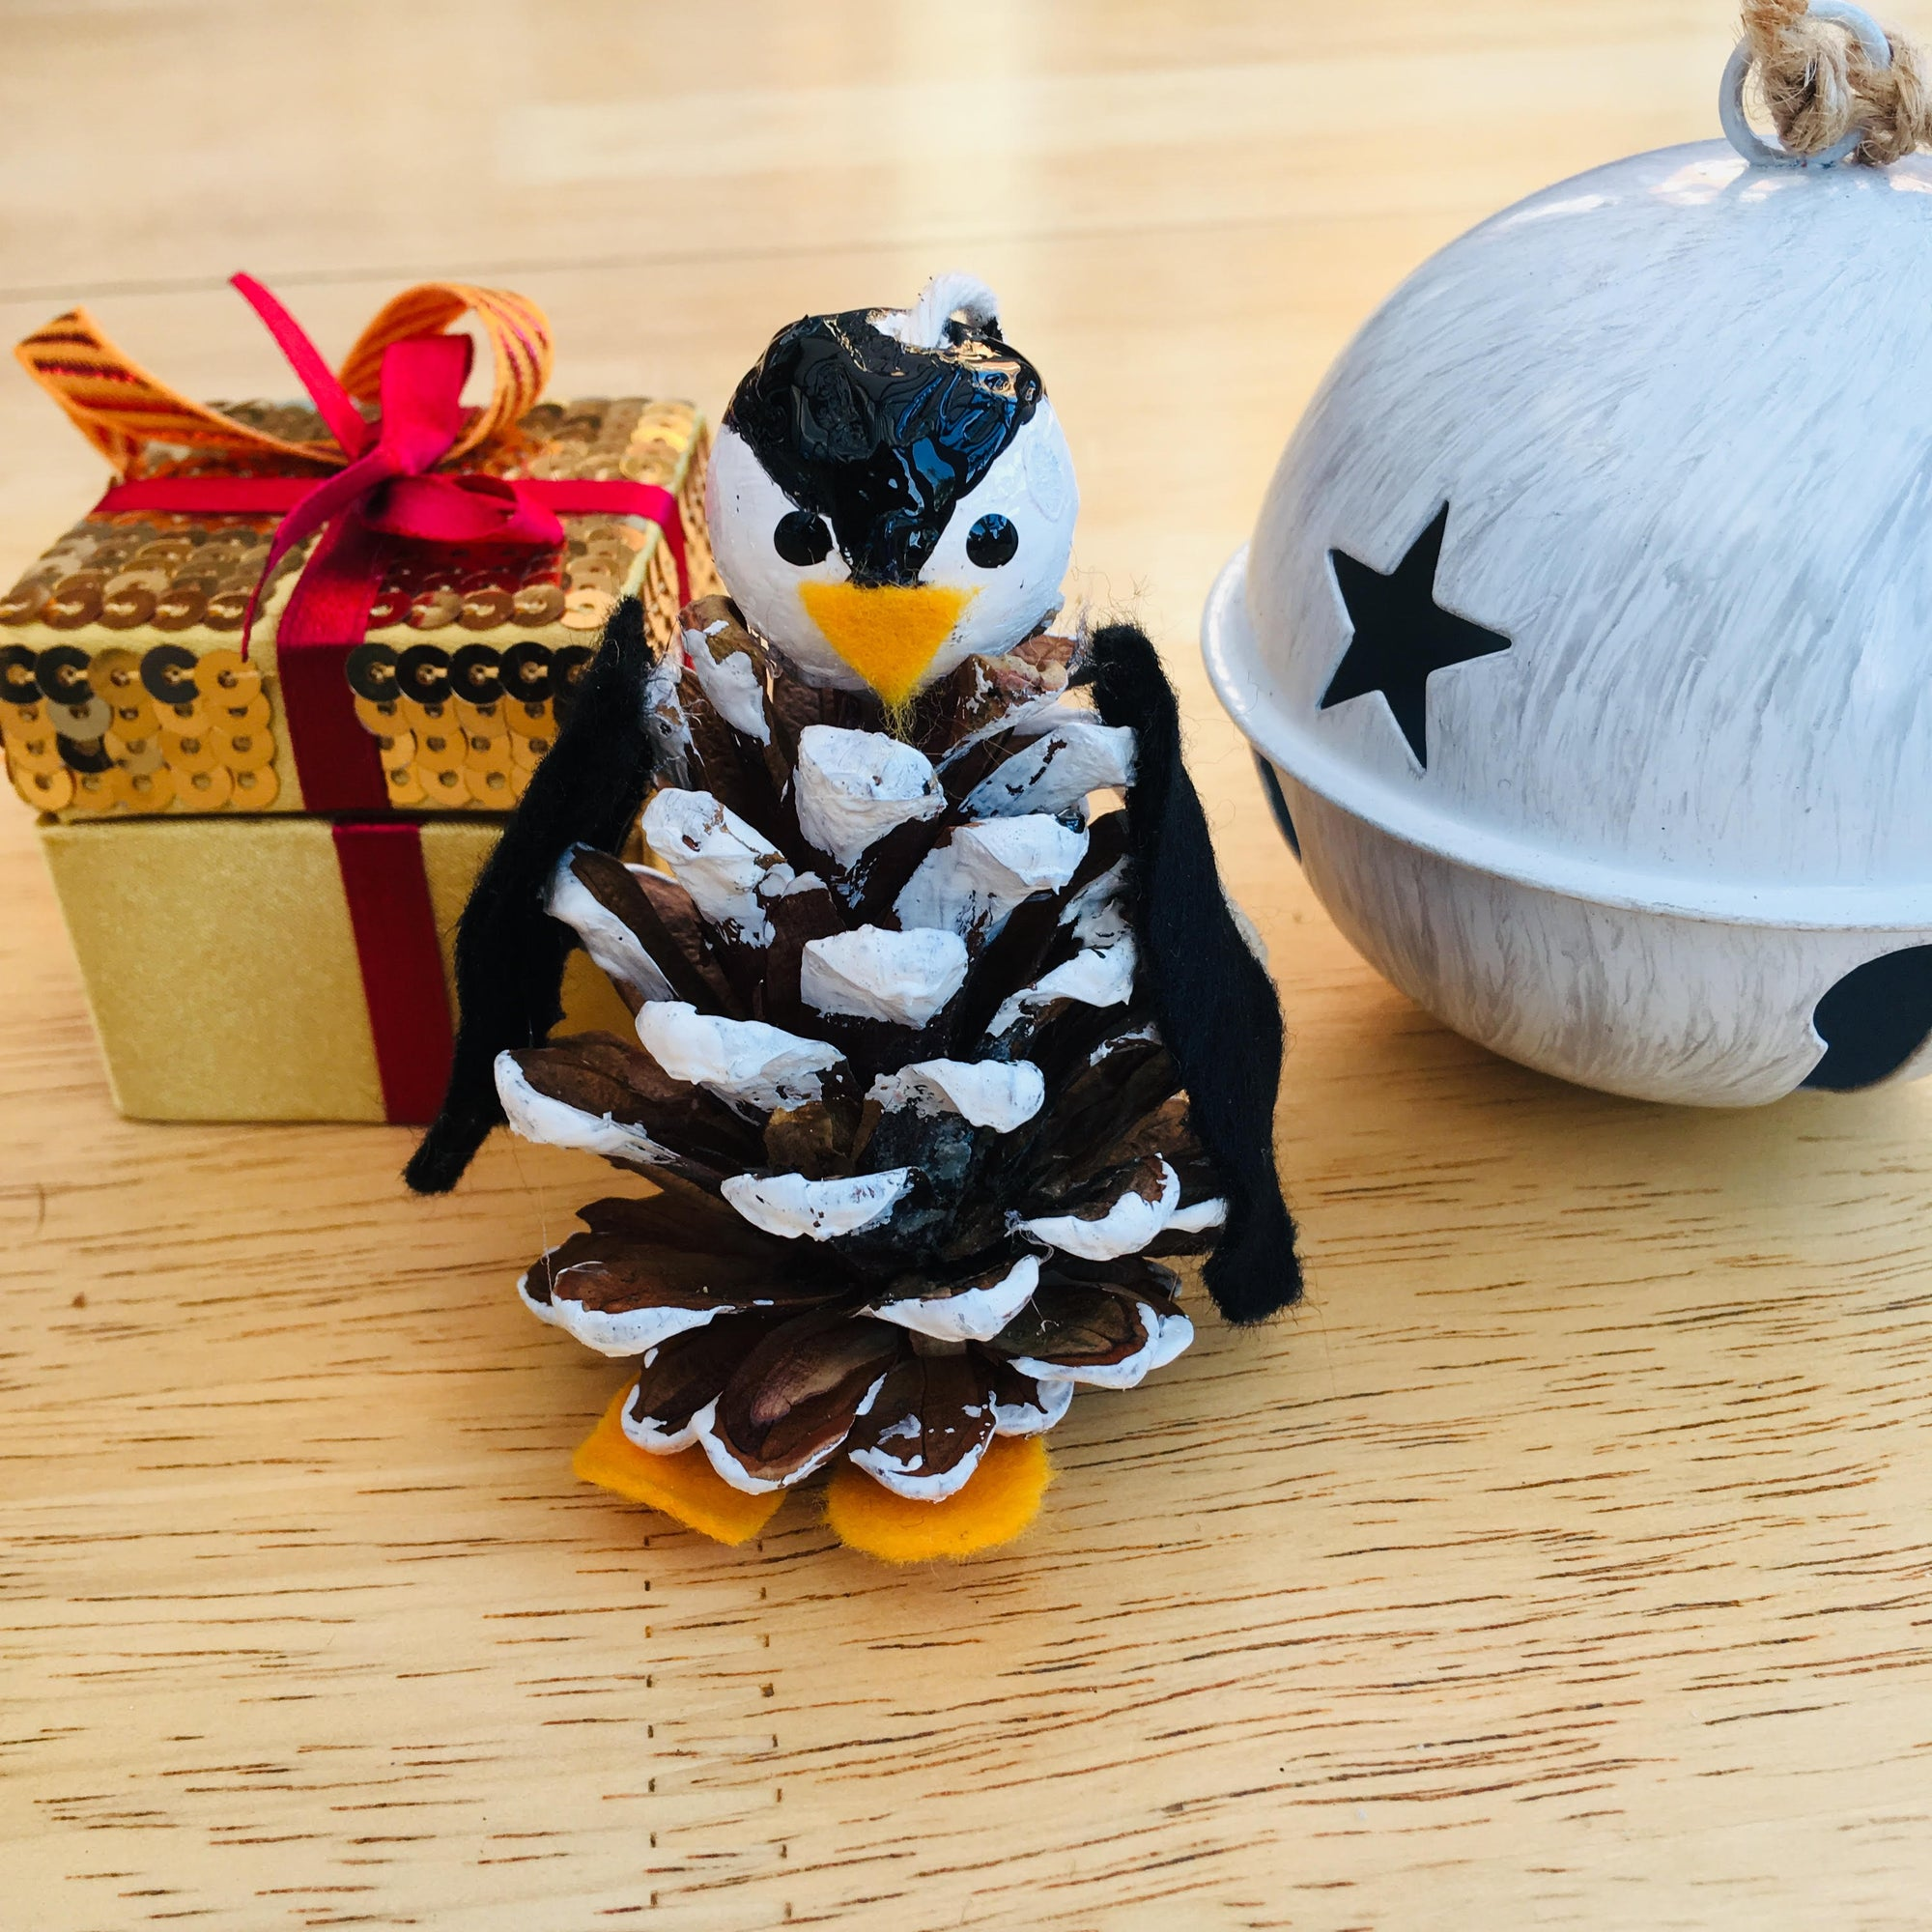 Make Your Own: Pine Cone Penguins